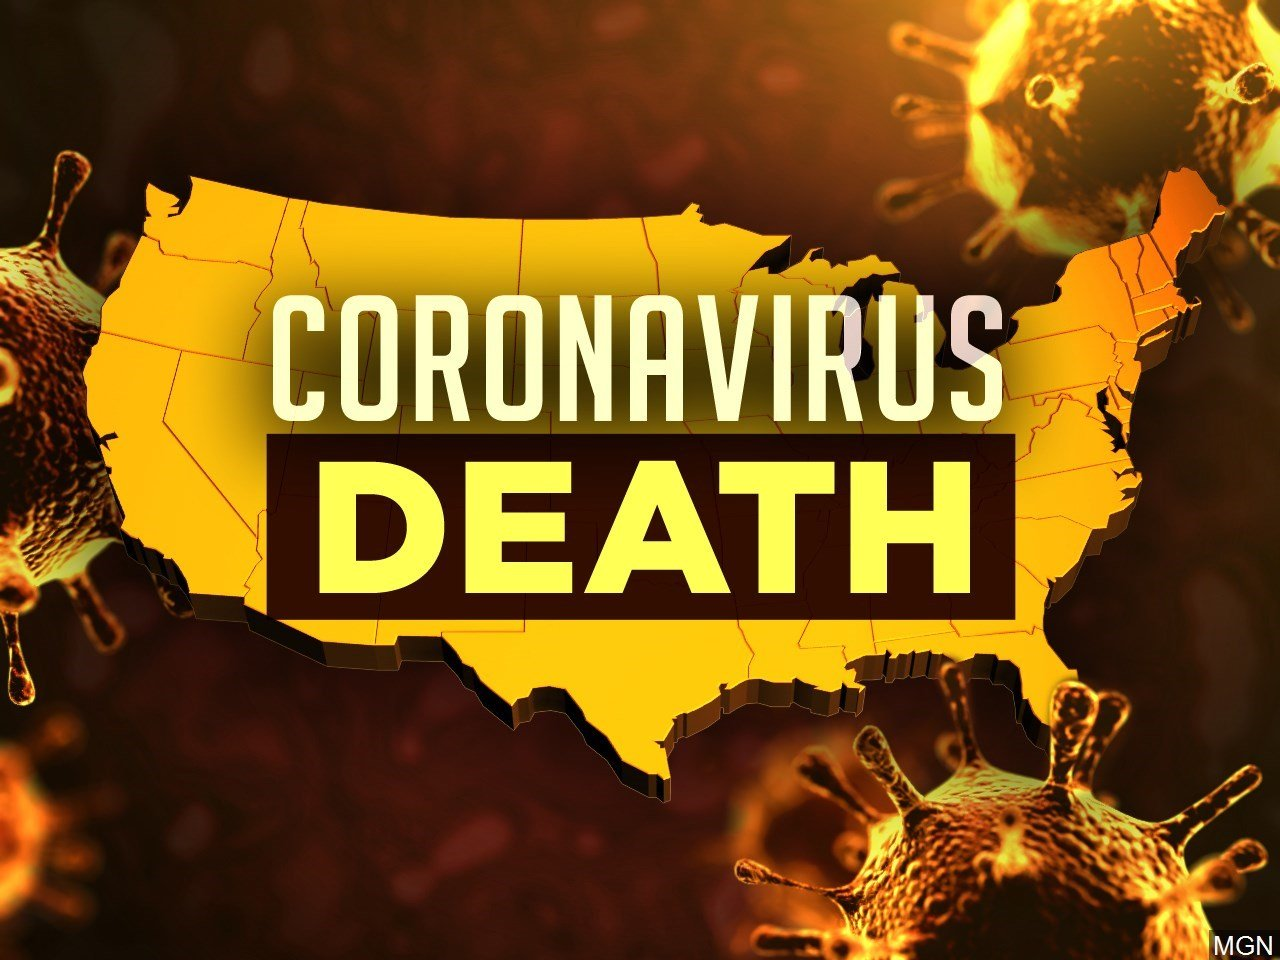 First COVID-19 death in Georgia confirmed by DPH and Governor Ke ...